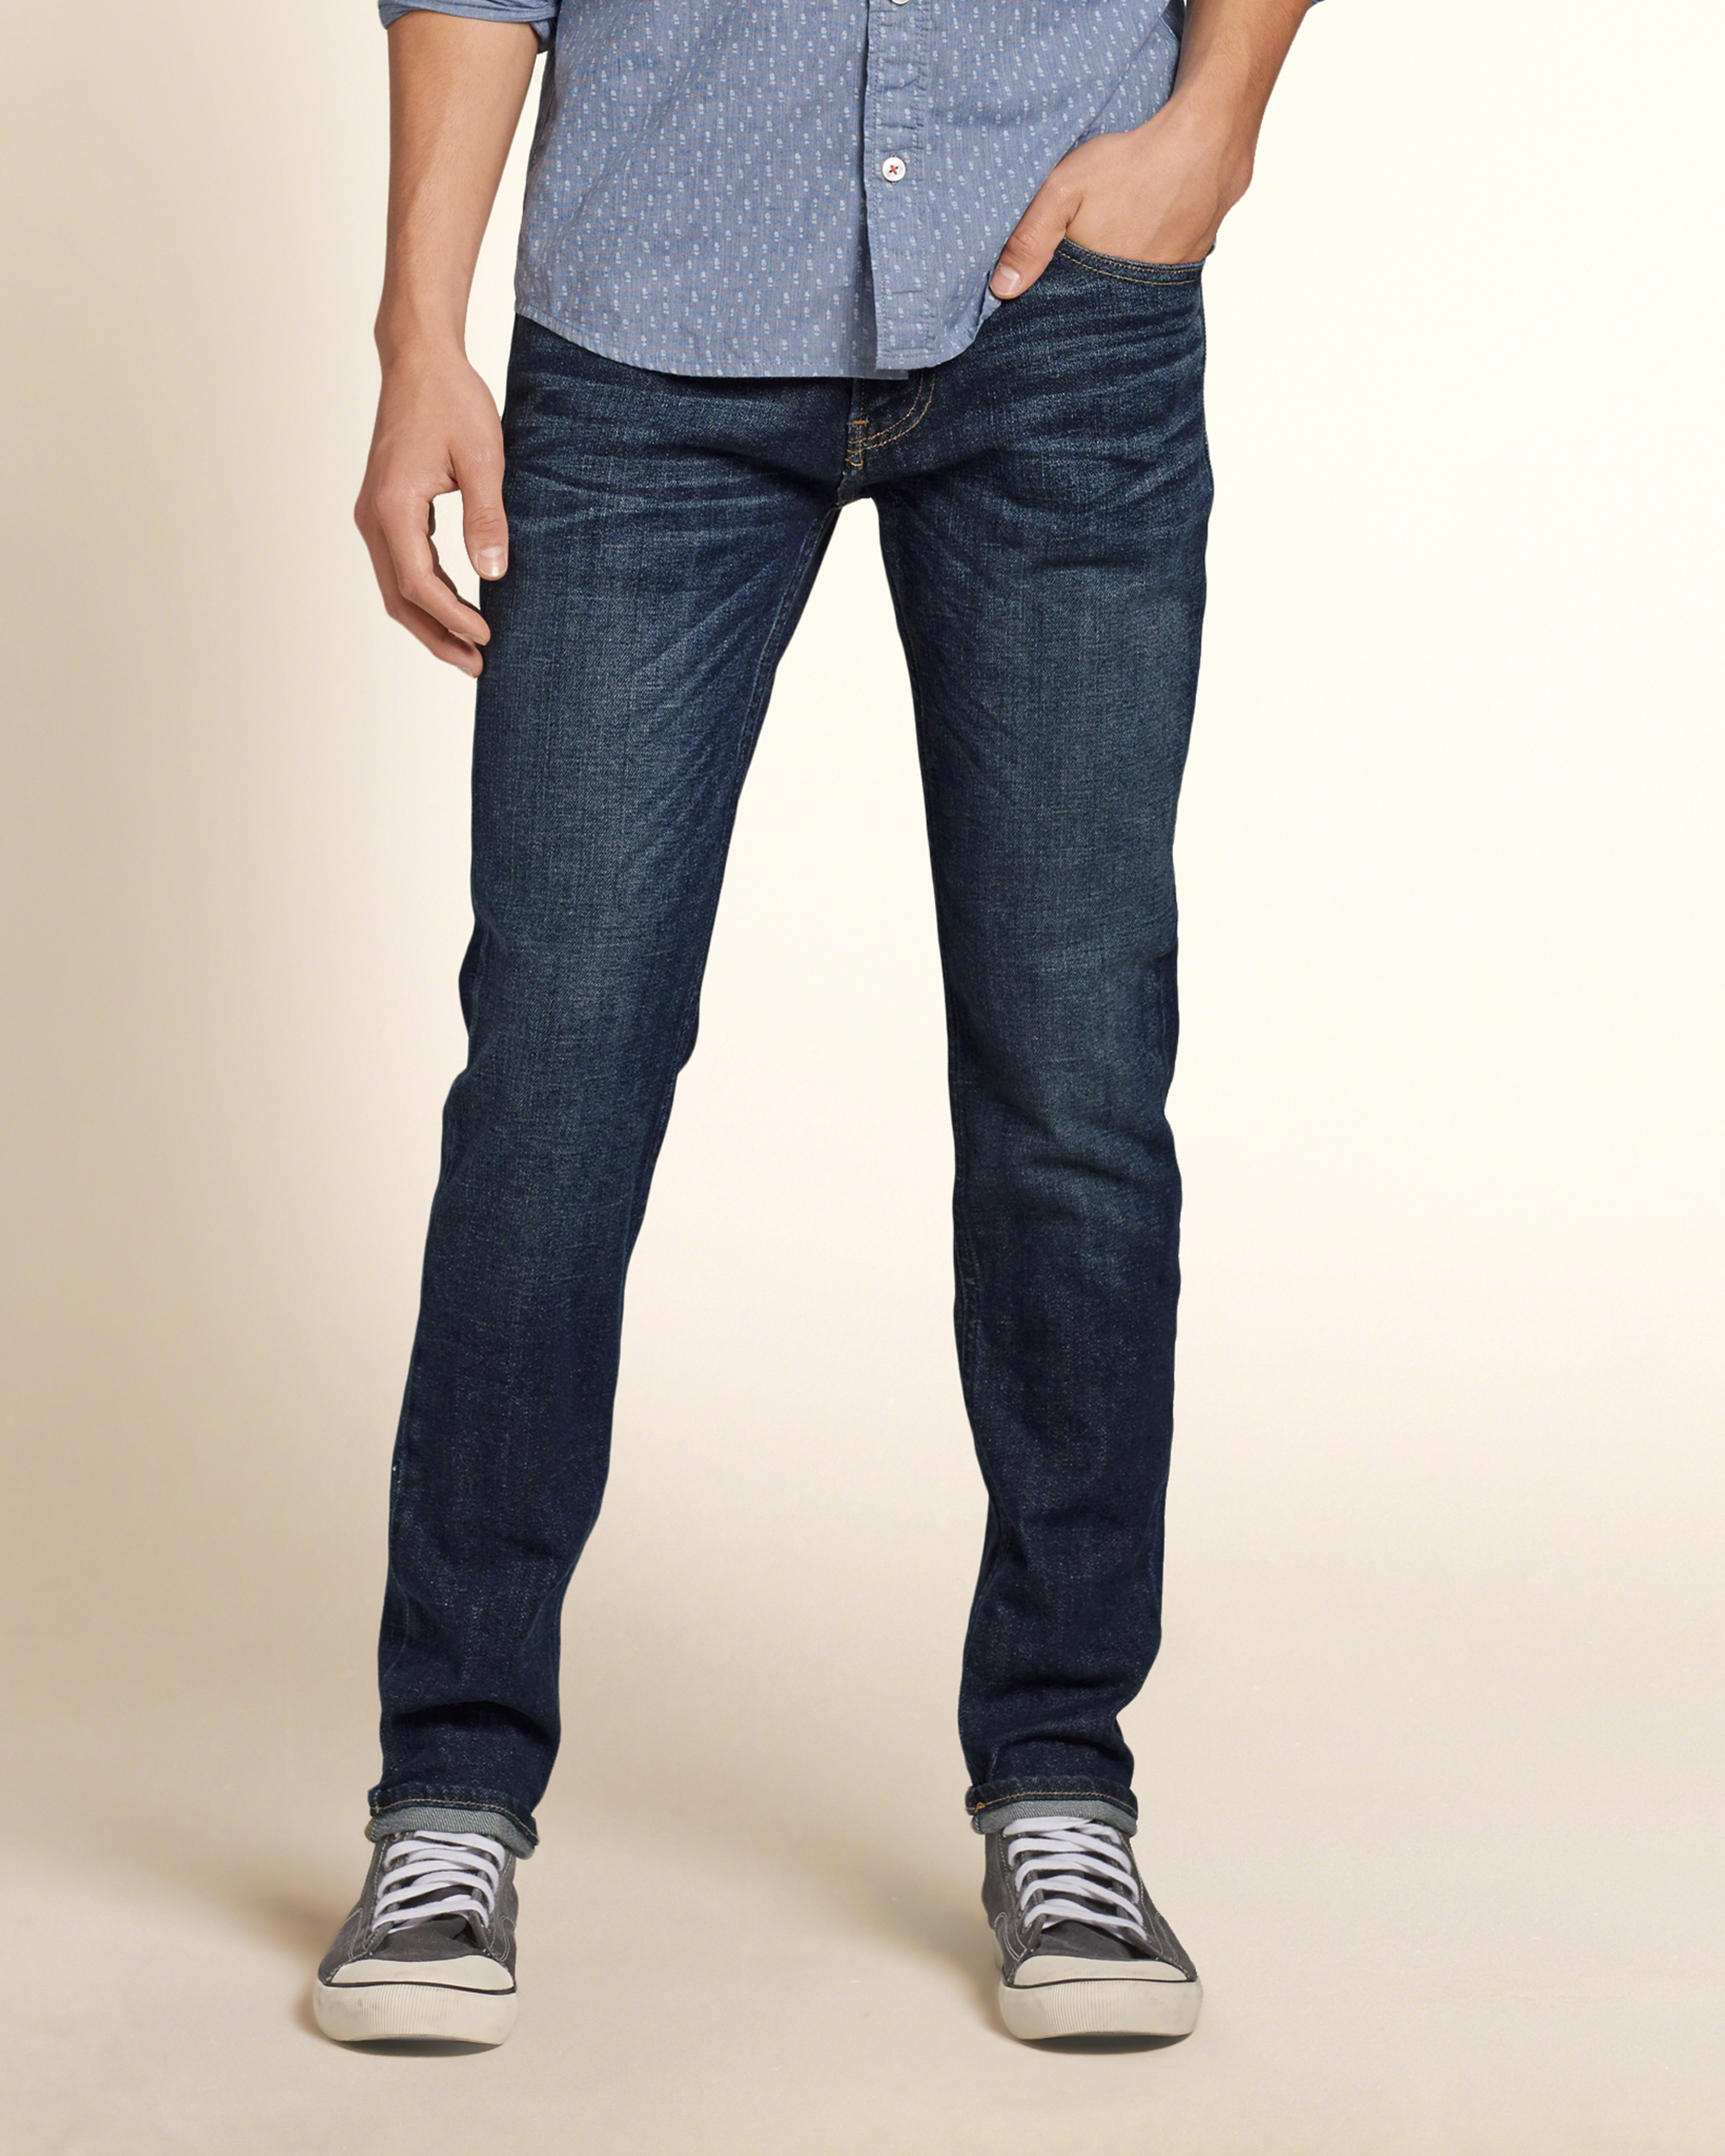 hollister dark jeans for men - photo #31